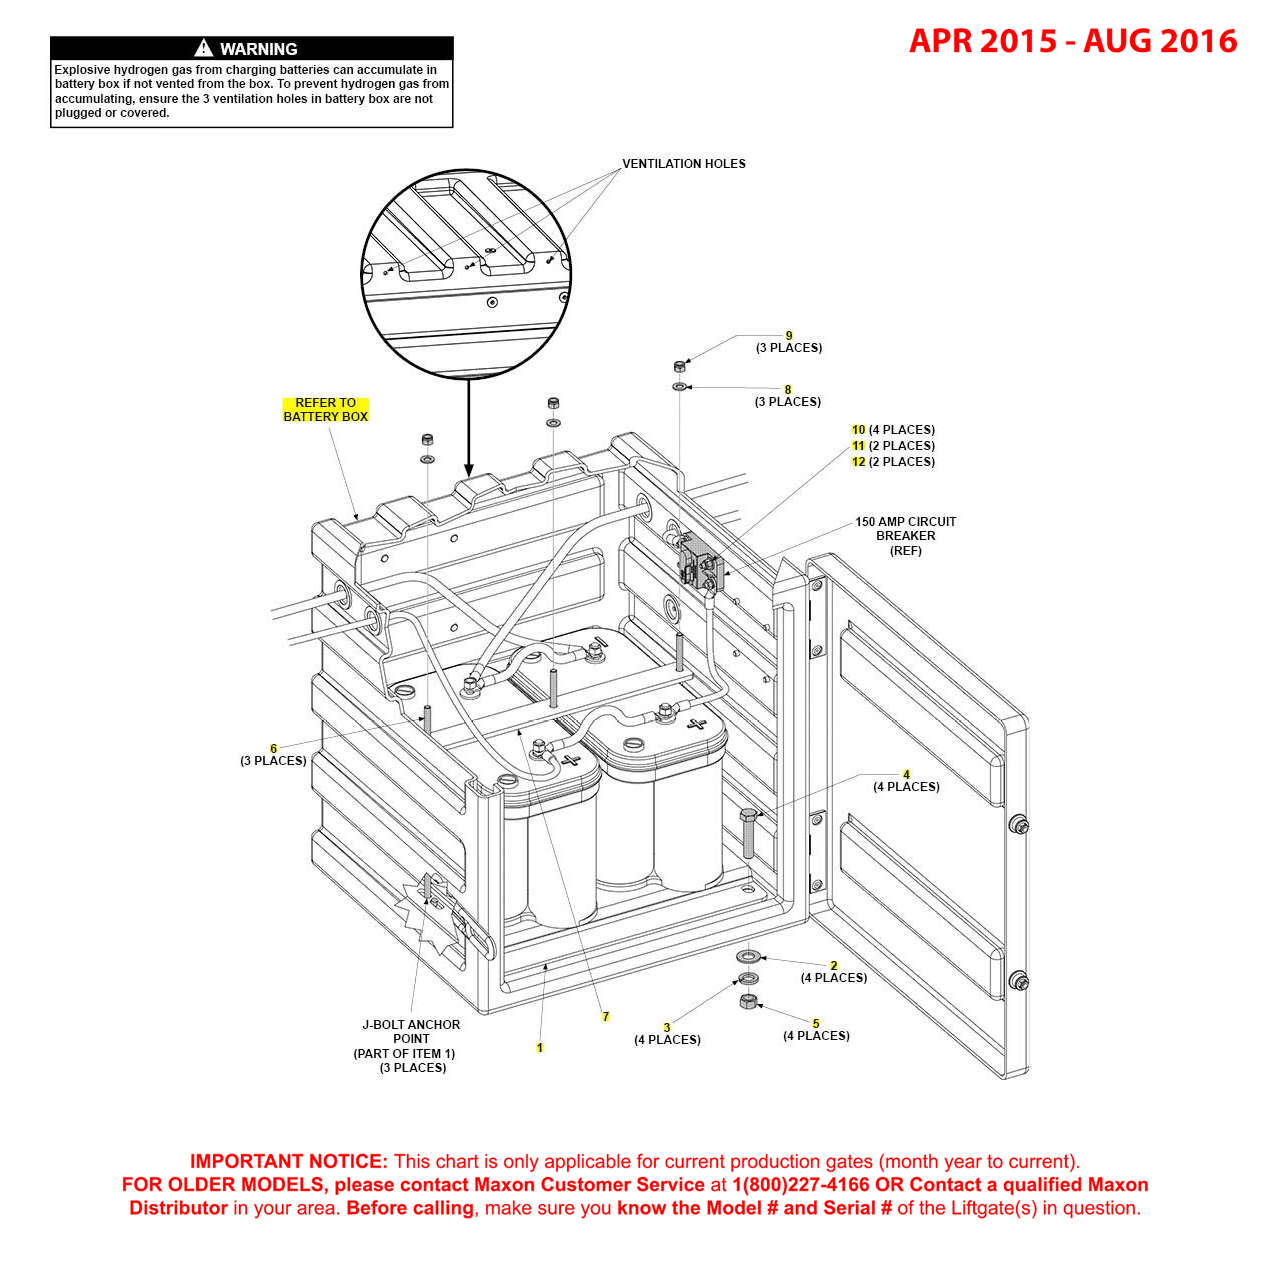 GPTWR (Apr 2015 - Aug 2016) Optional Battery Box Assembly Diagram